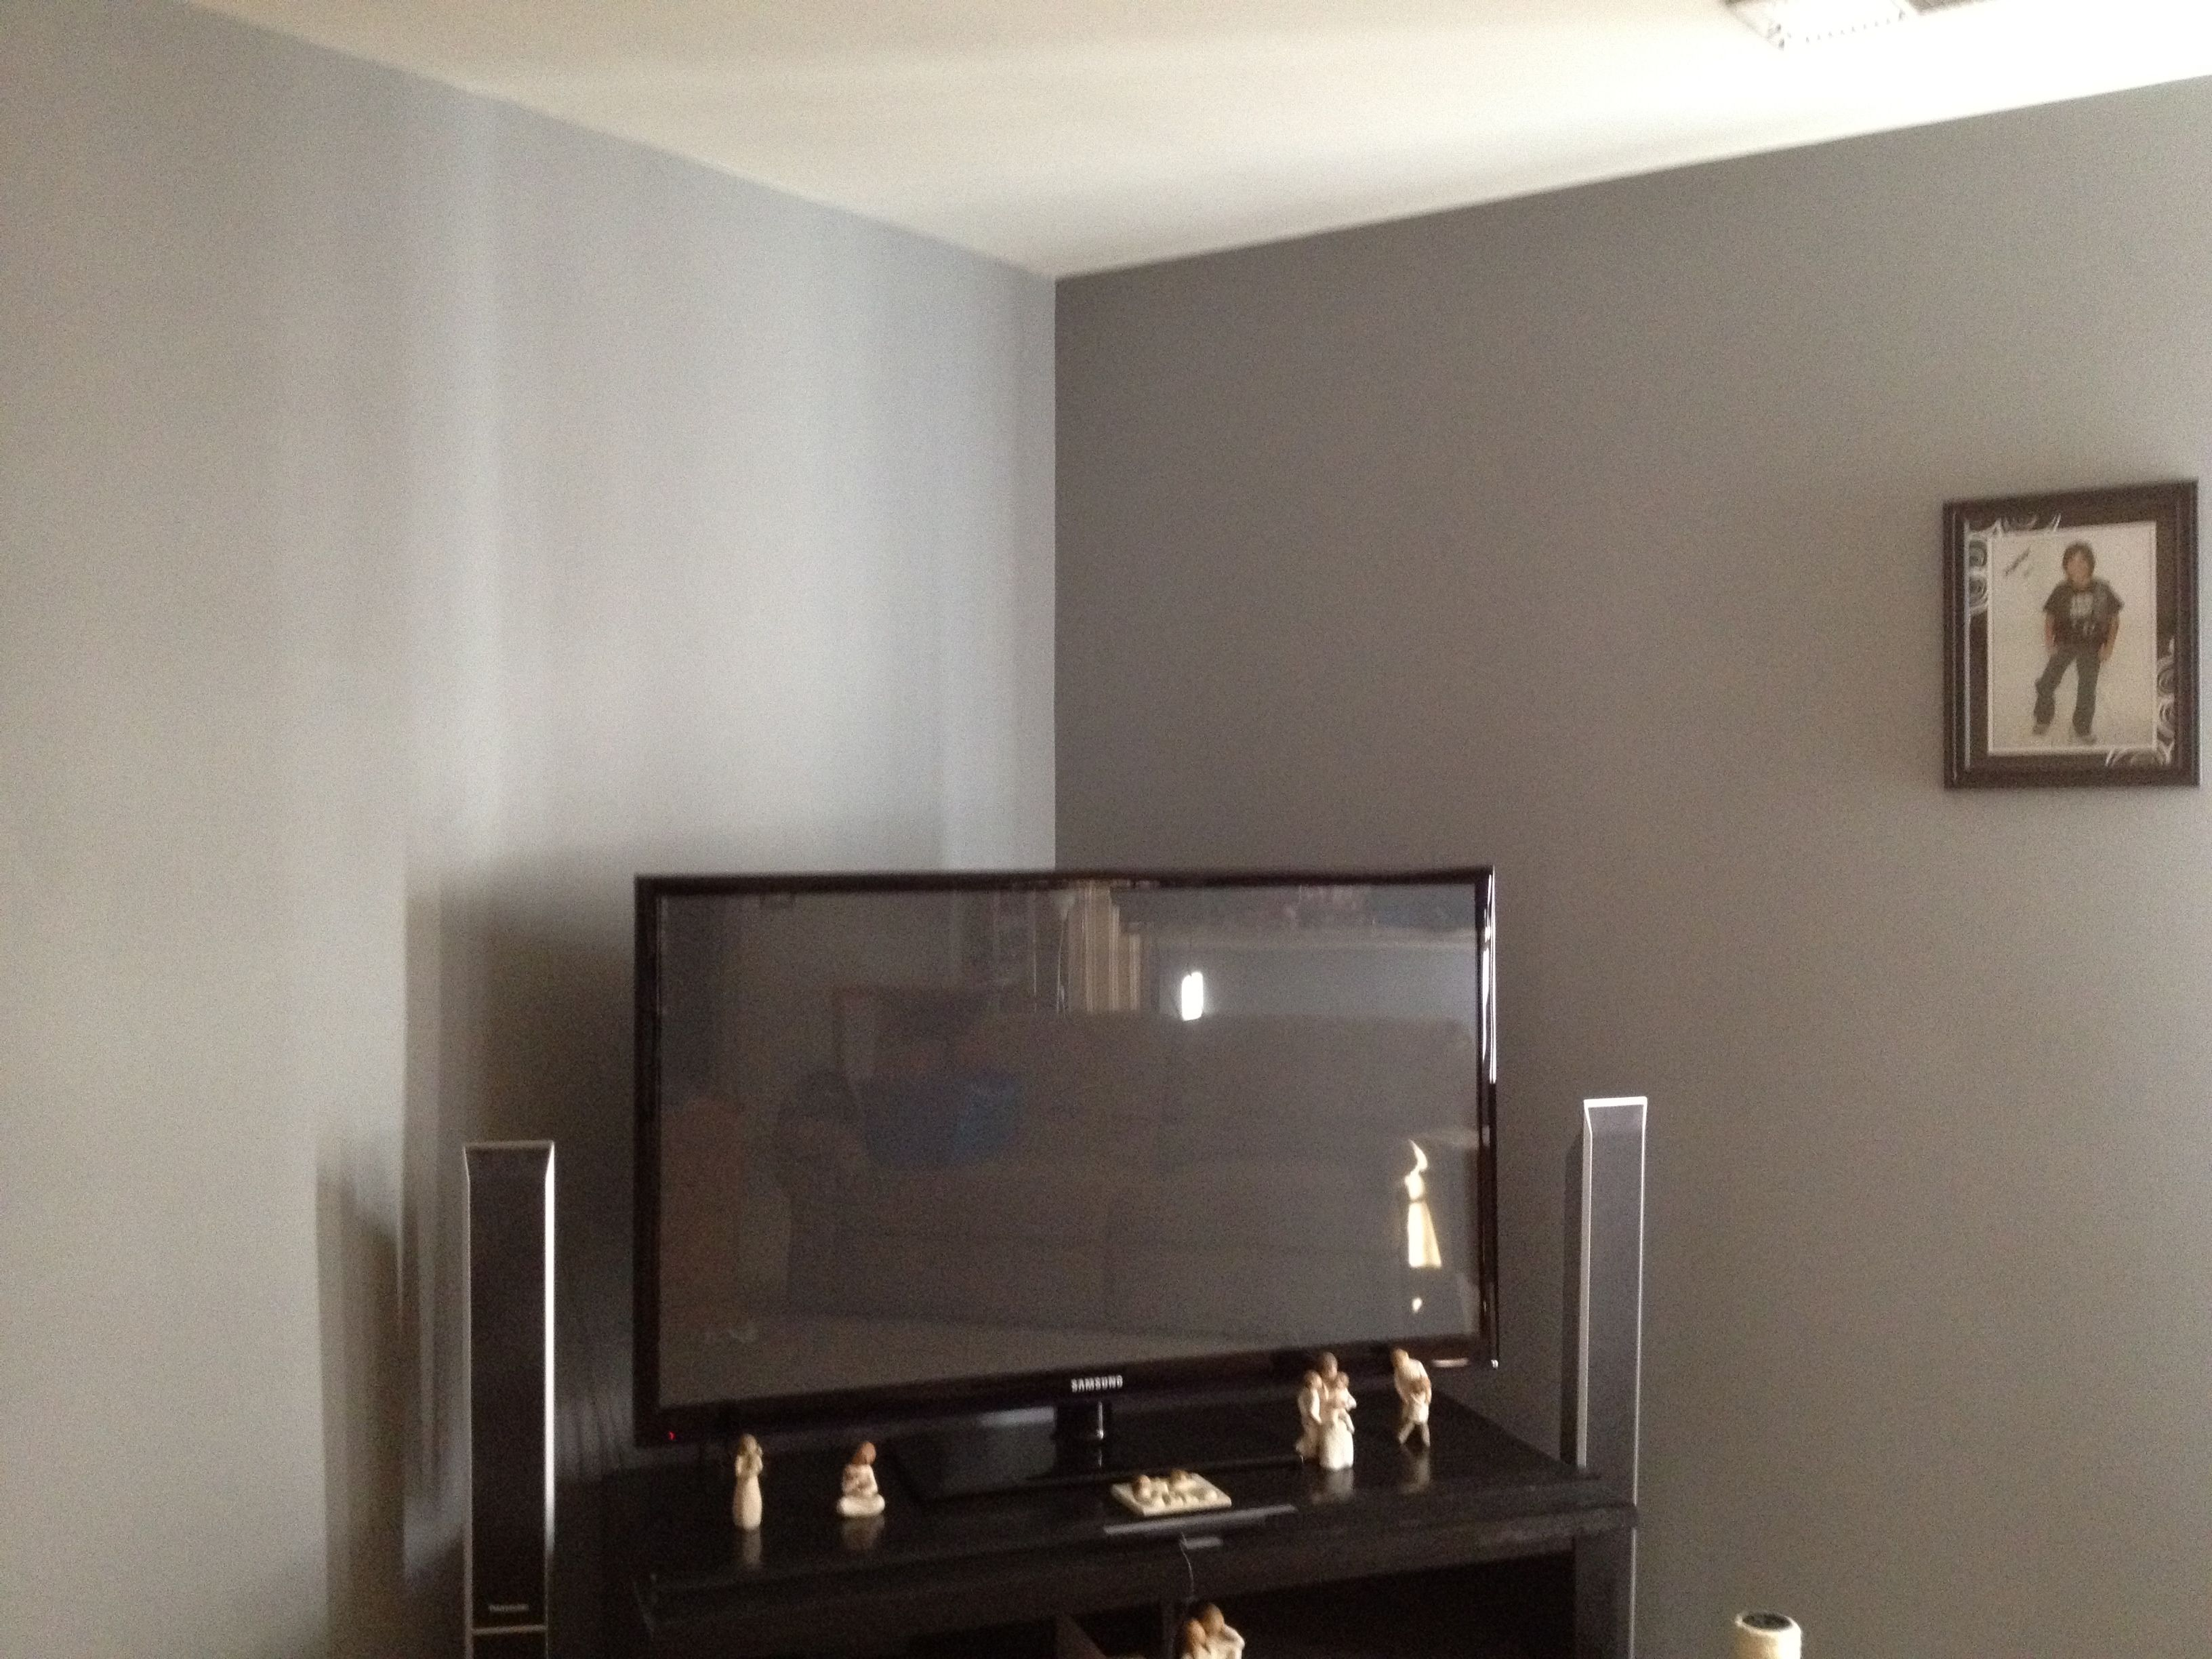 Paint Wall The Desired Color Flat Chose Granite Grey Colors Light Walls Gray